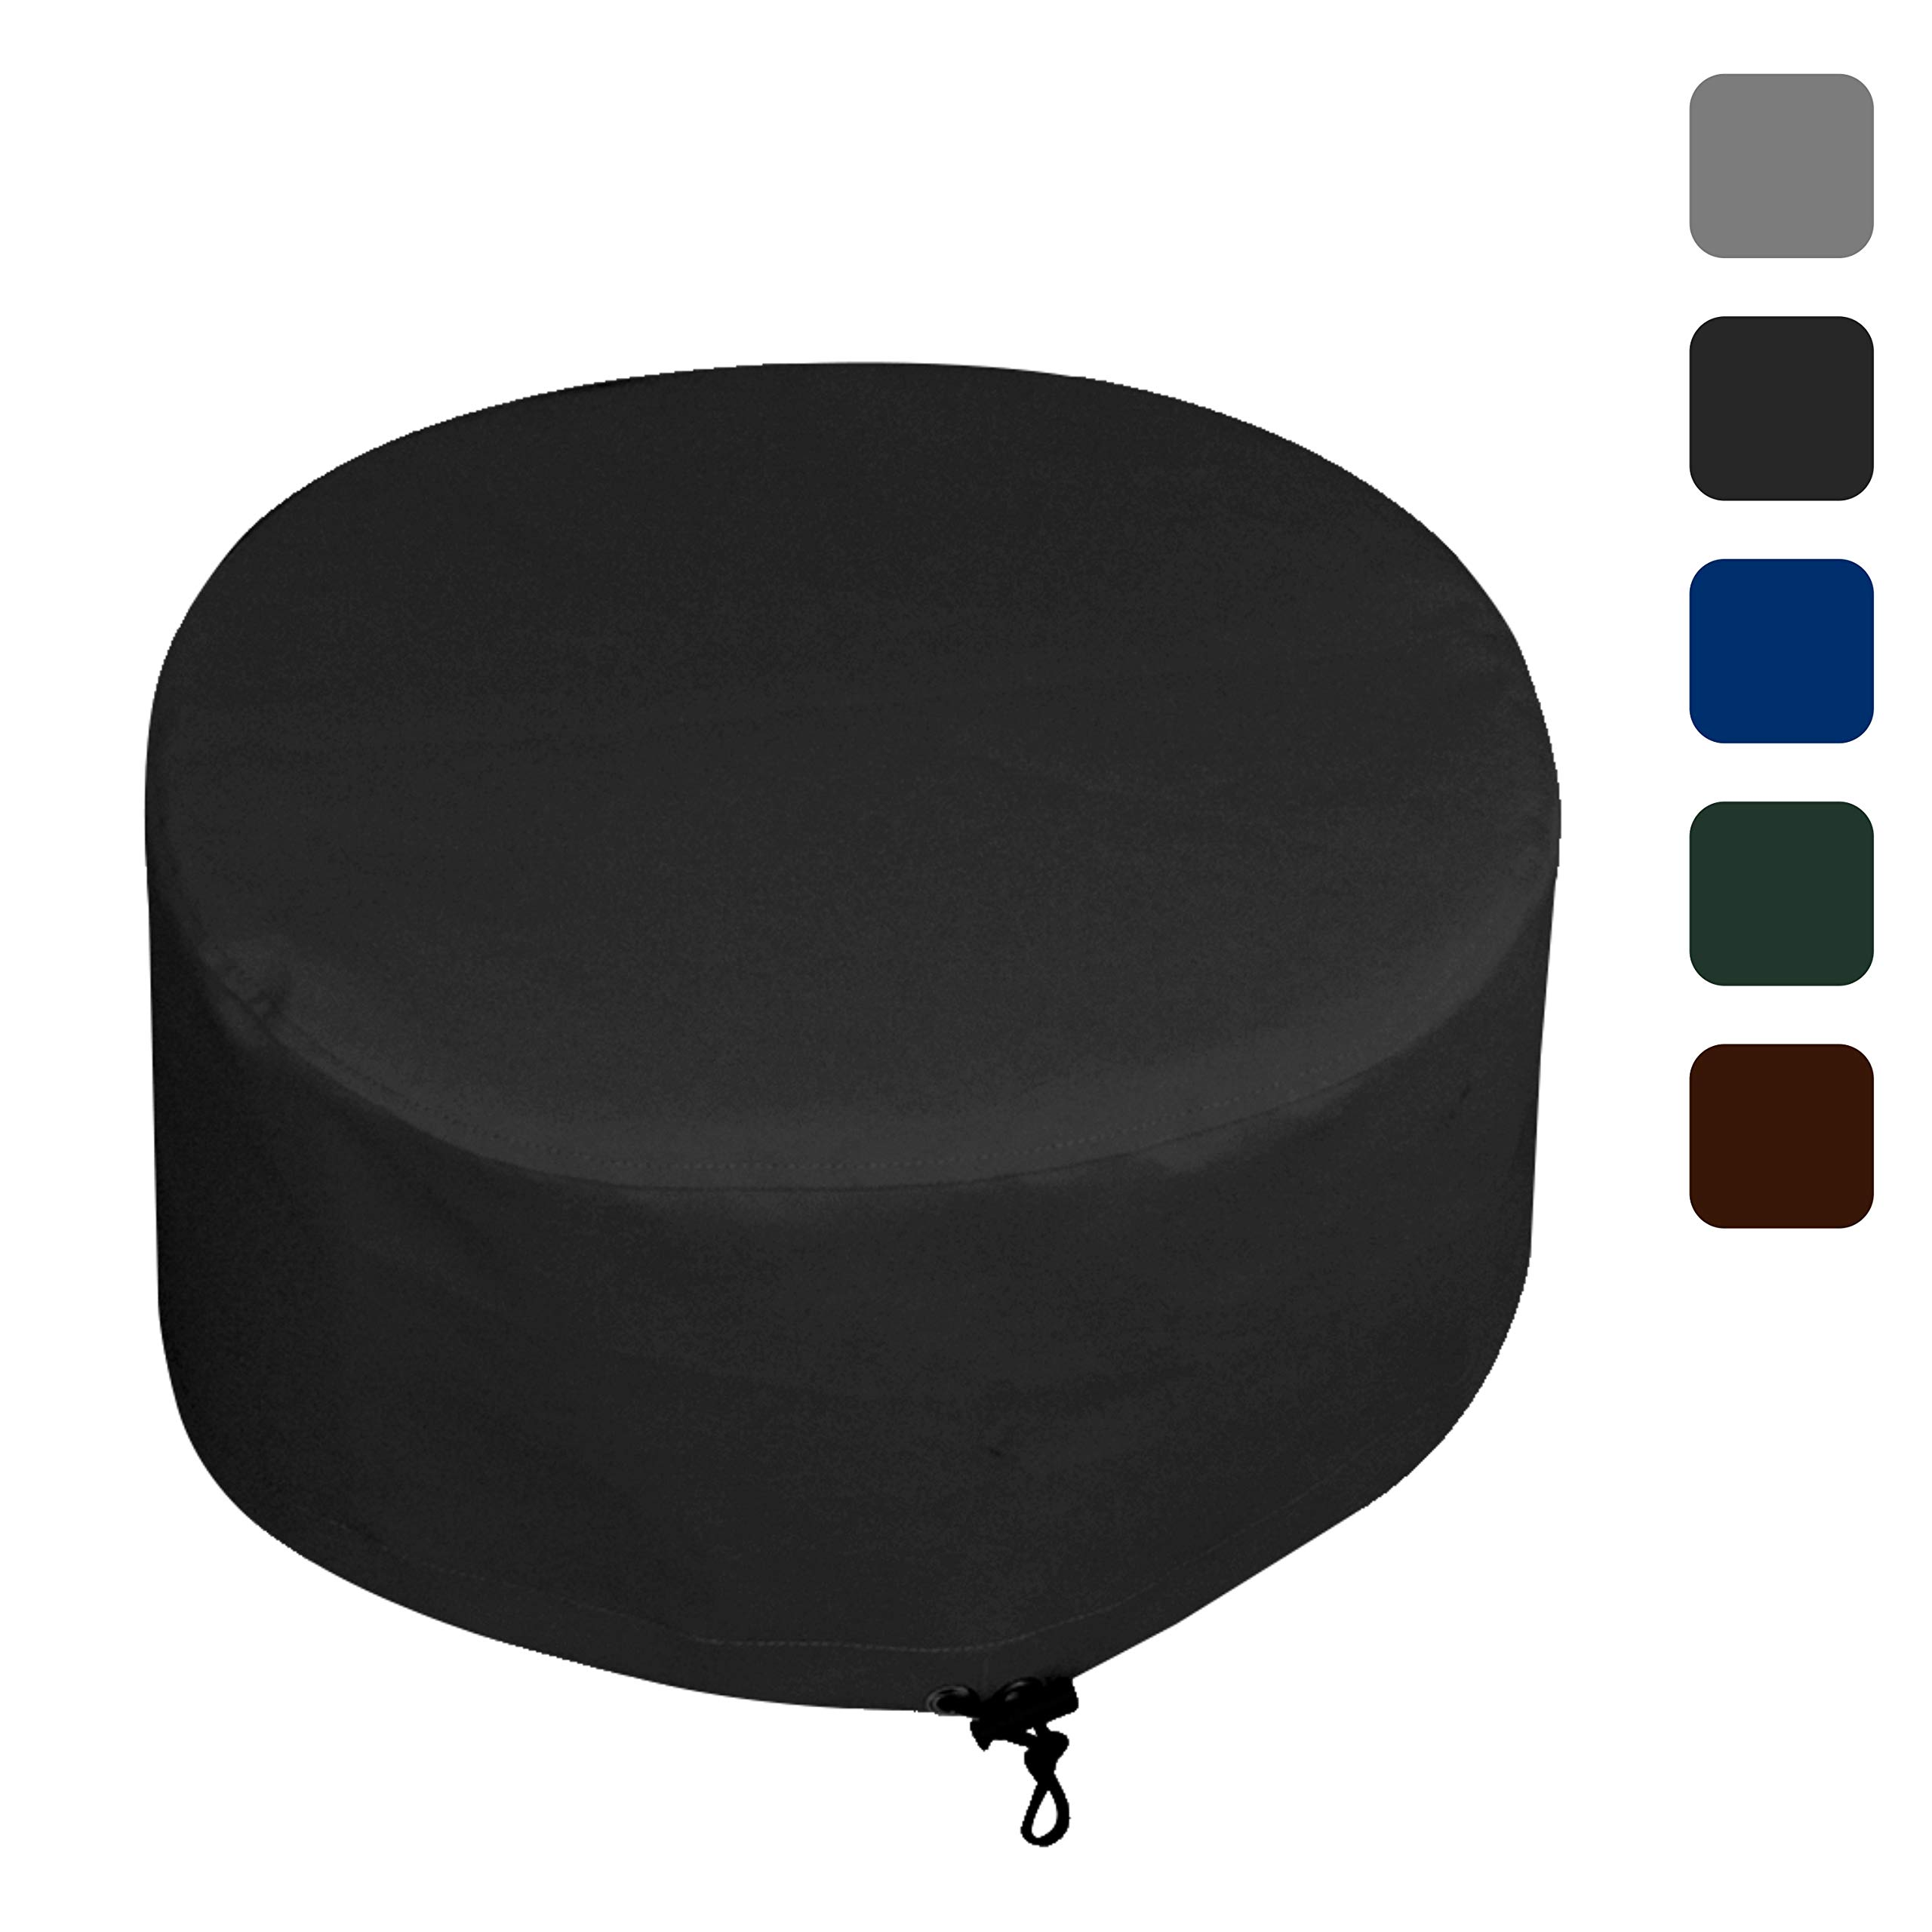 Fire Pit Outdoor Covers Waterproof, 100% UV Resistant, 18Oz PVC Heavy Duty Fabric with Air Pockets and Drawstring for Snugfit to Withstand Winds & Storms. Custom Made to any Size/Shape 36 Inch, Black